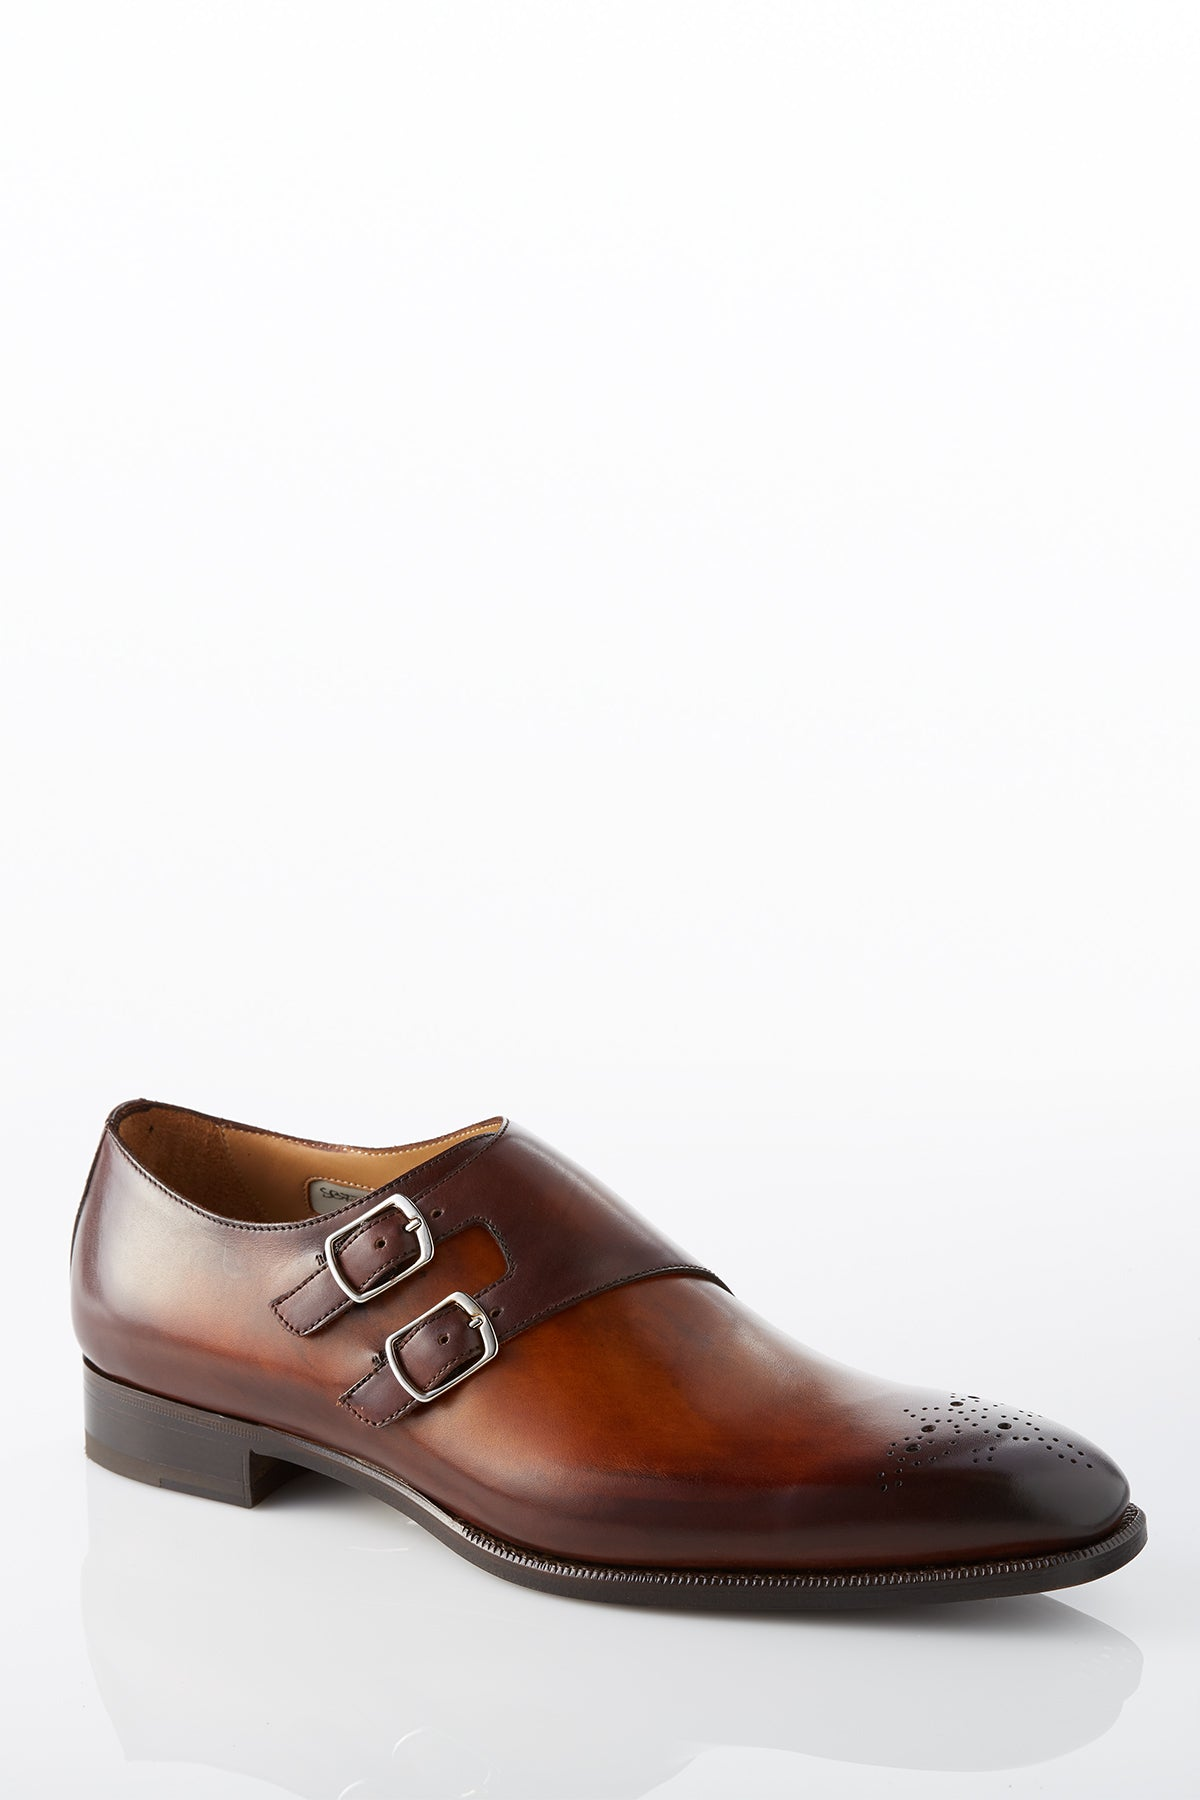 David August Leather Double Monk-strap Shoes in Whiskey Brown Di Bianco